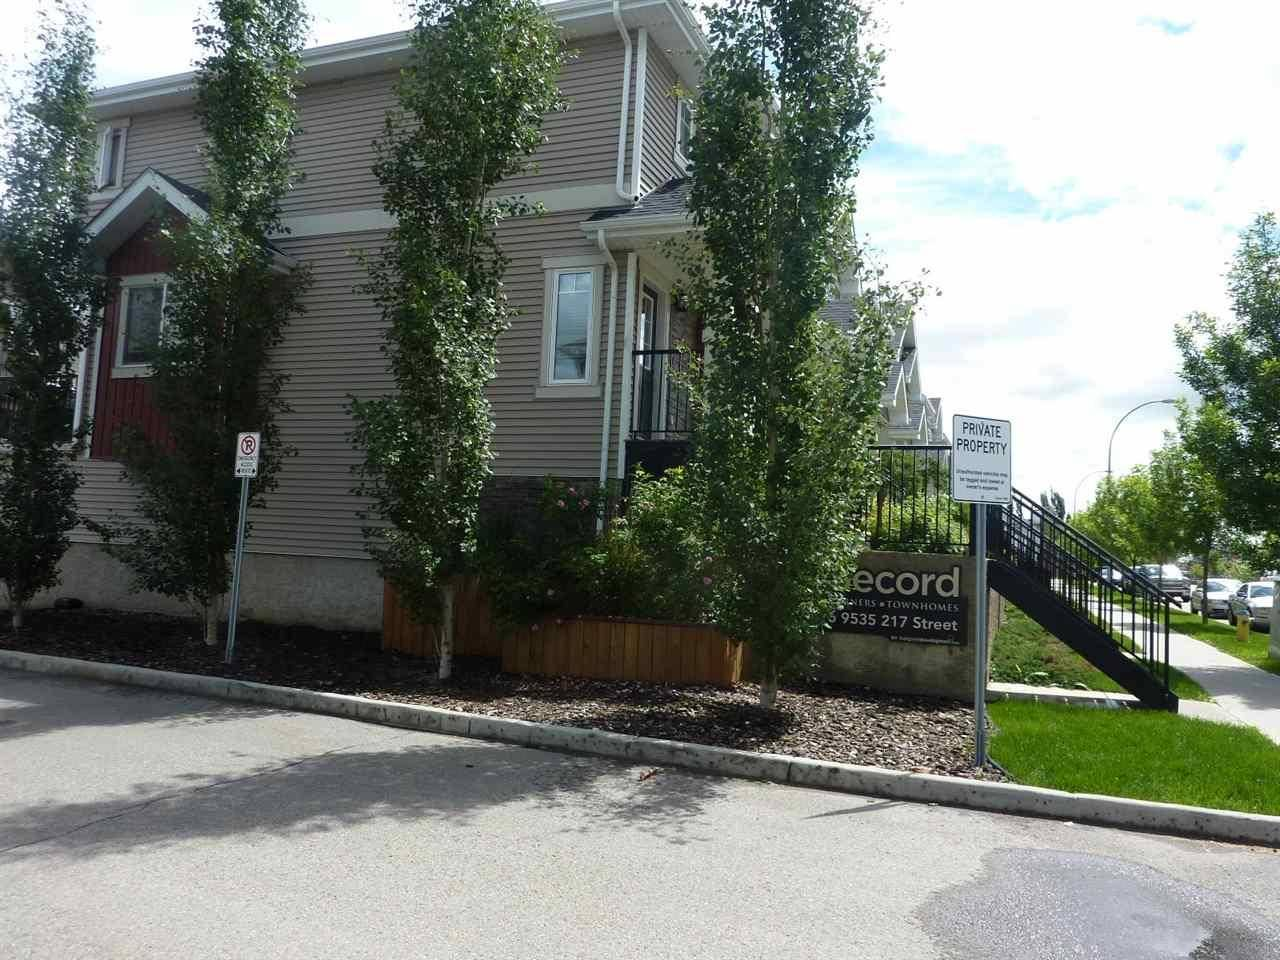 Townhouse for sale at  217 St Nw Edmonton Alberta - MLS: E4163144